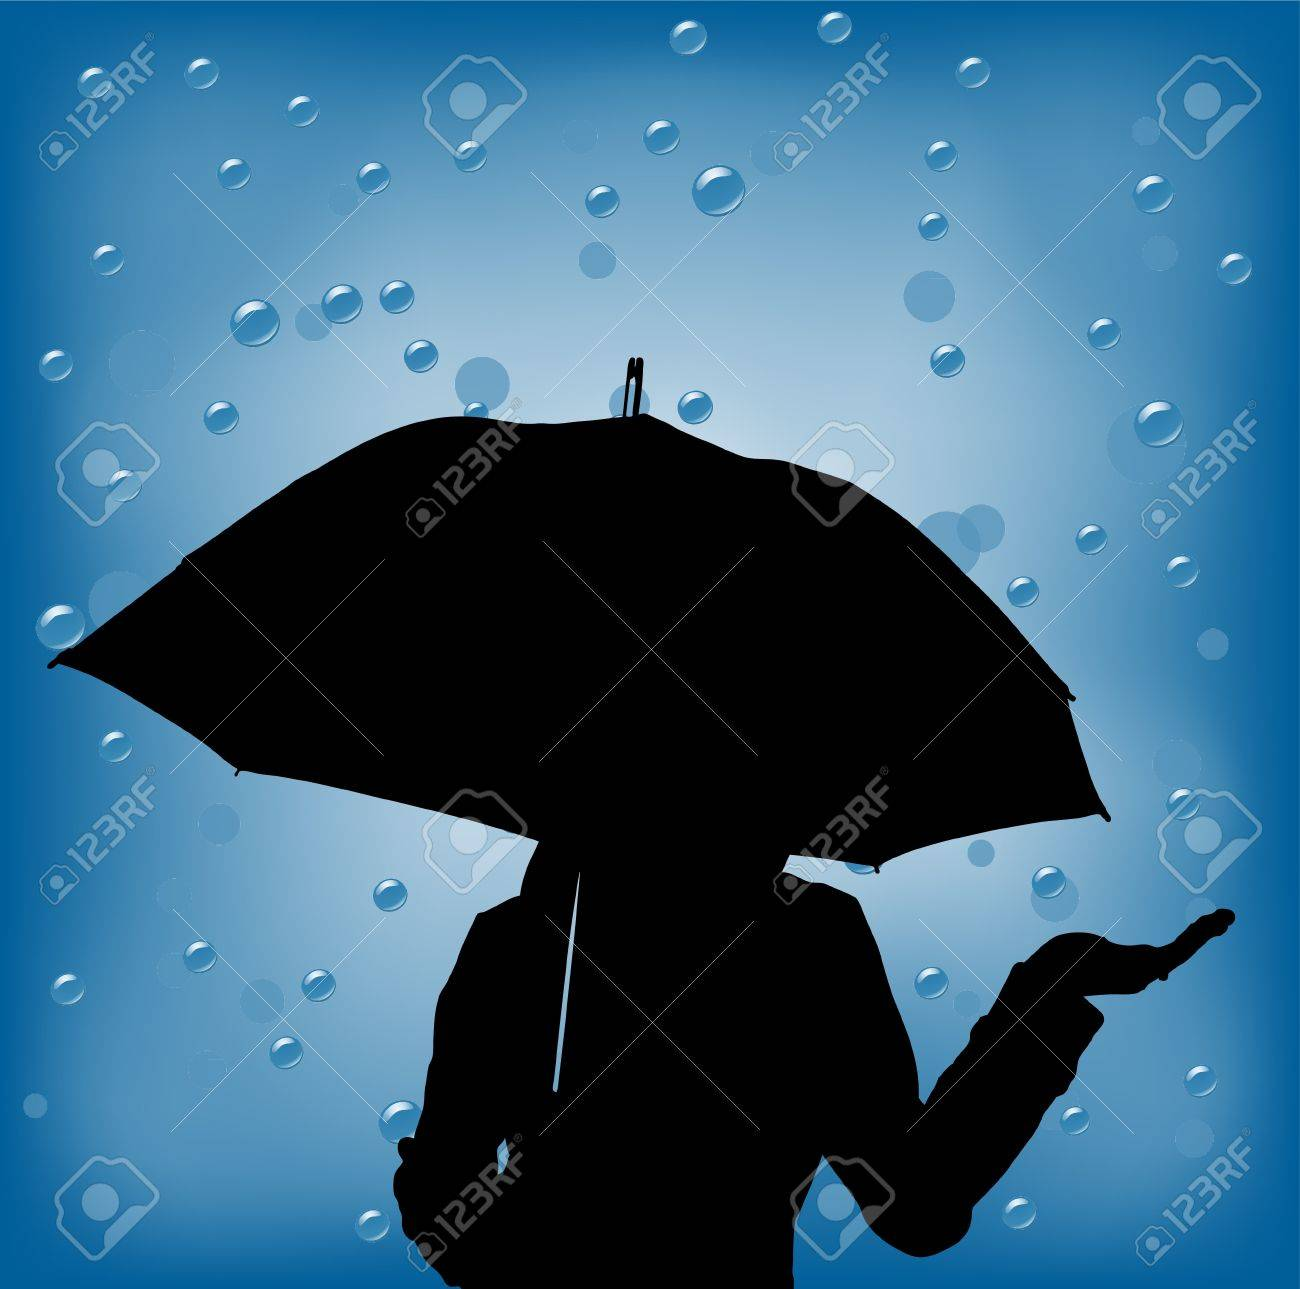 young woman in a rainy day holding ubrella Stock Photo - 9032610